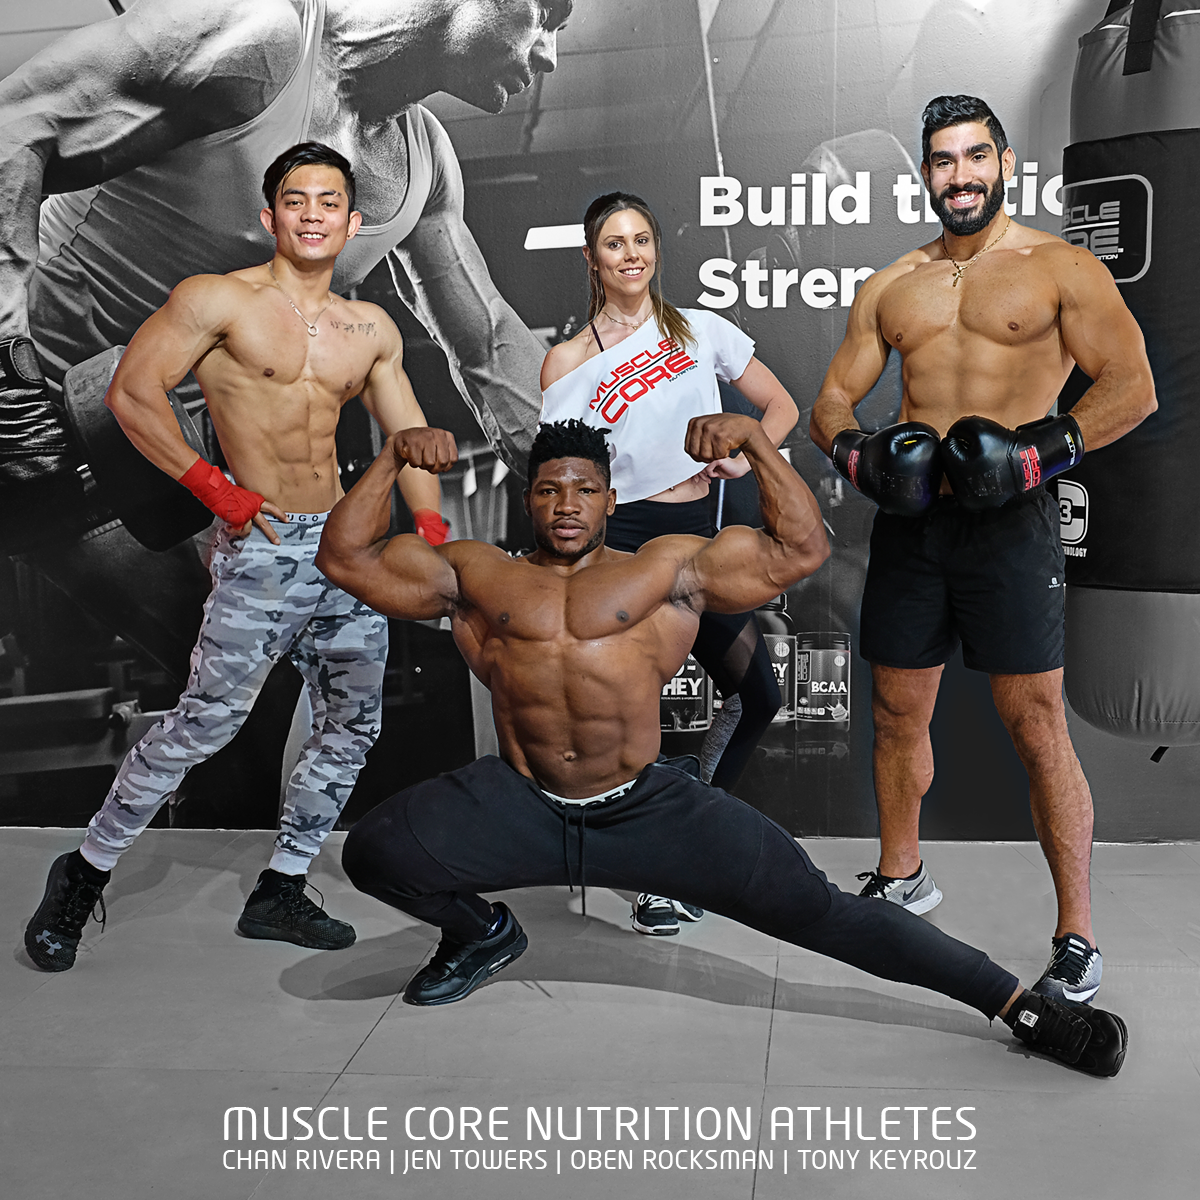 Muscle Core Athletes